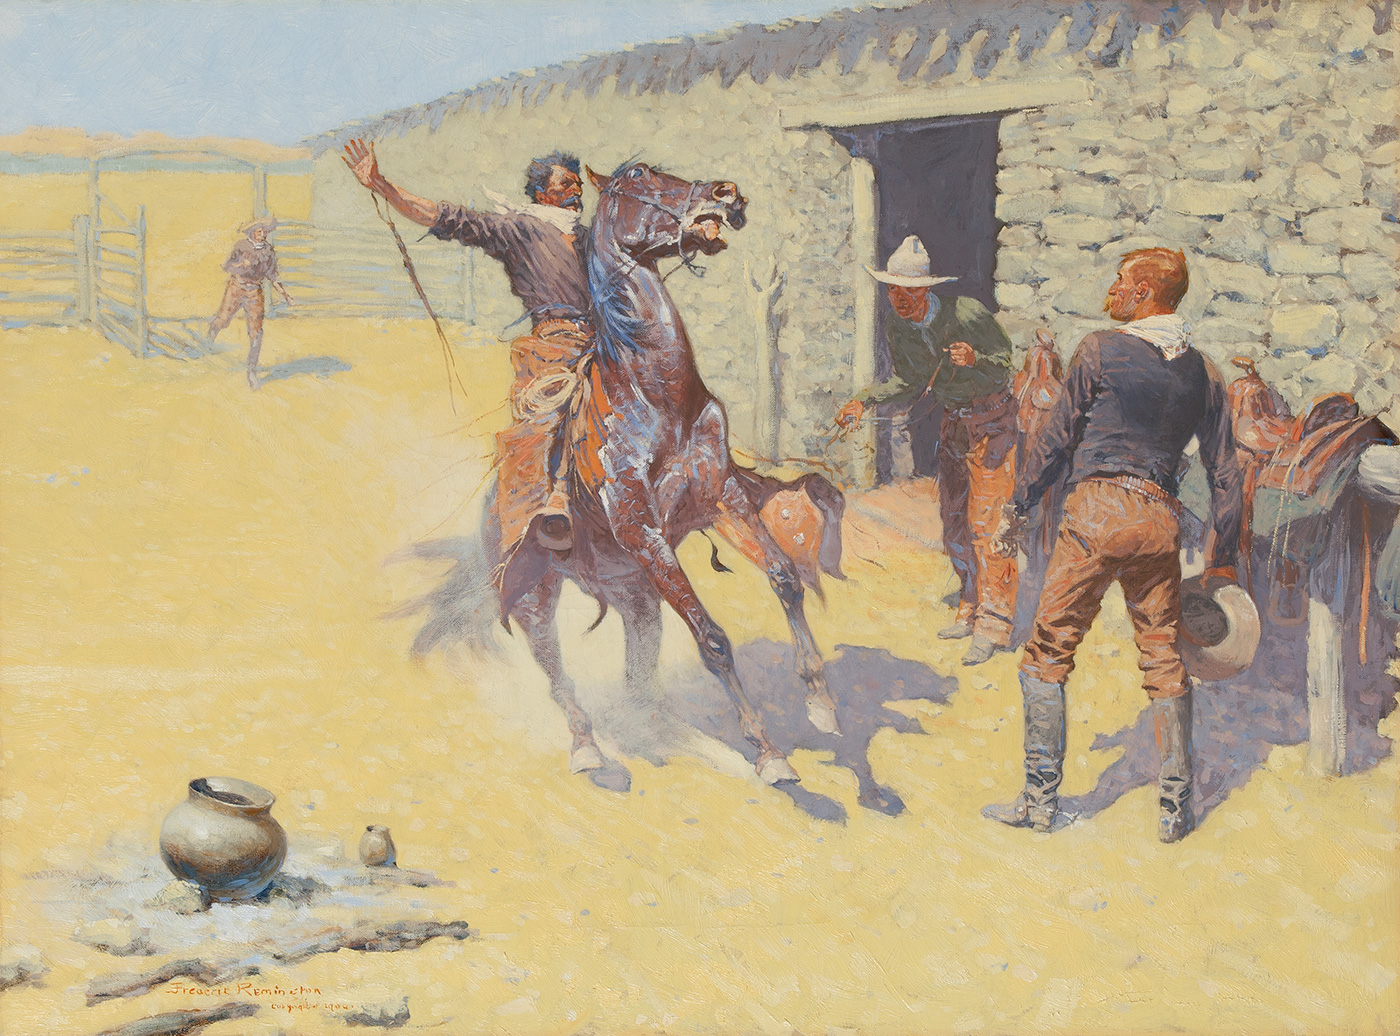 A cowboy on horseback comes to a halt with his hand in the air in front of two standing cowboys.